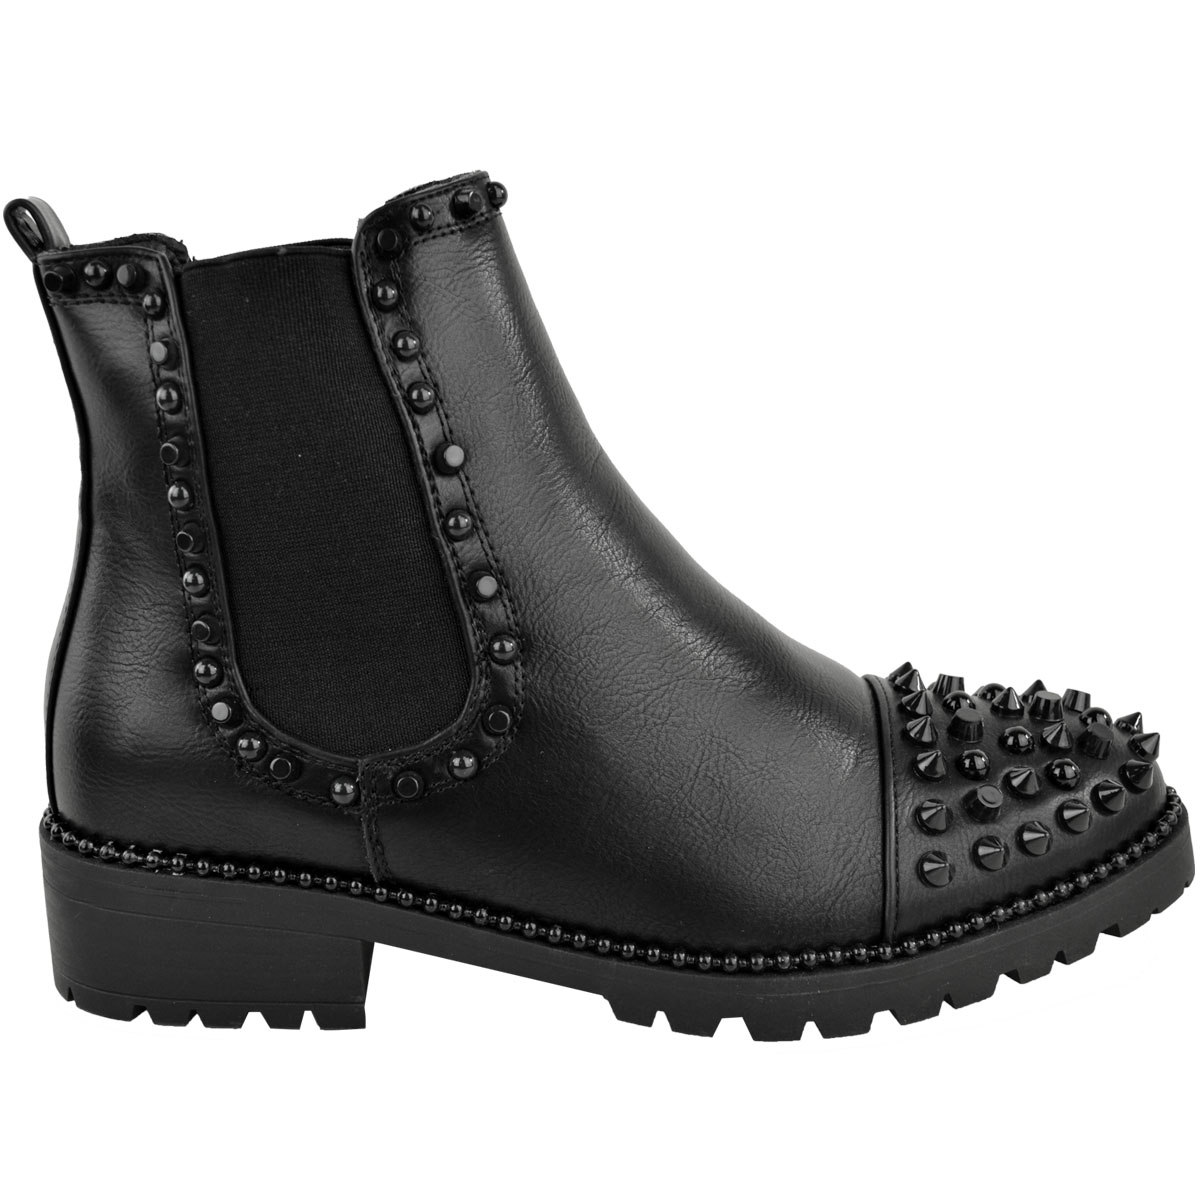 New-Womens-Ladies-Studded-Goth-Zip-Ankle-Boots-Gusset-Chelsea-Chunky-Punk-Size Indexbild 15